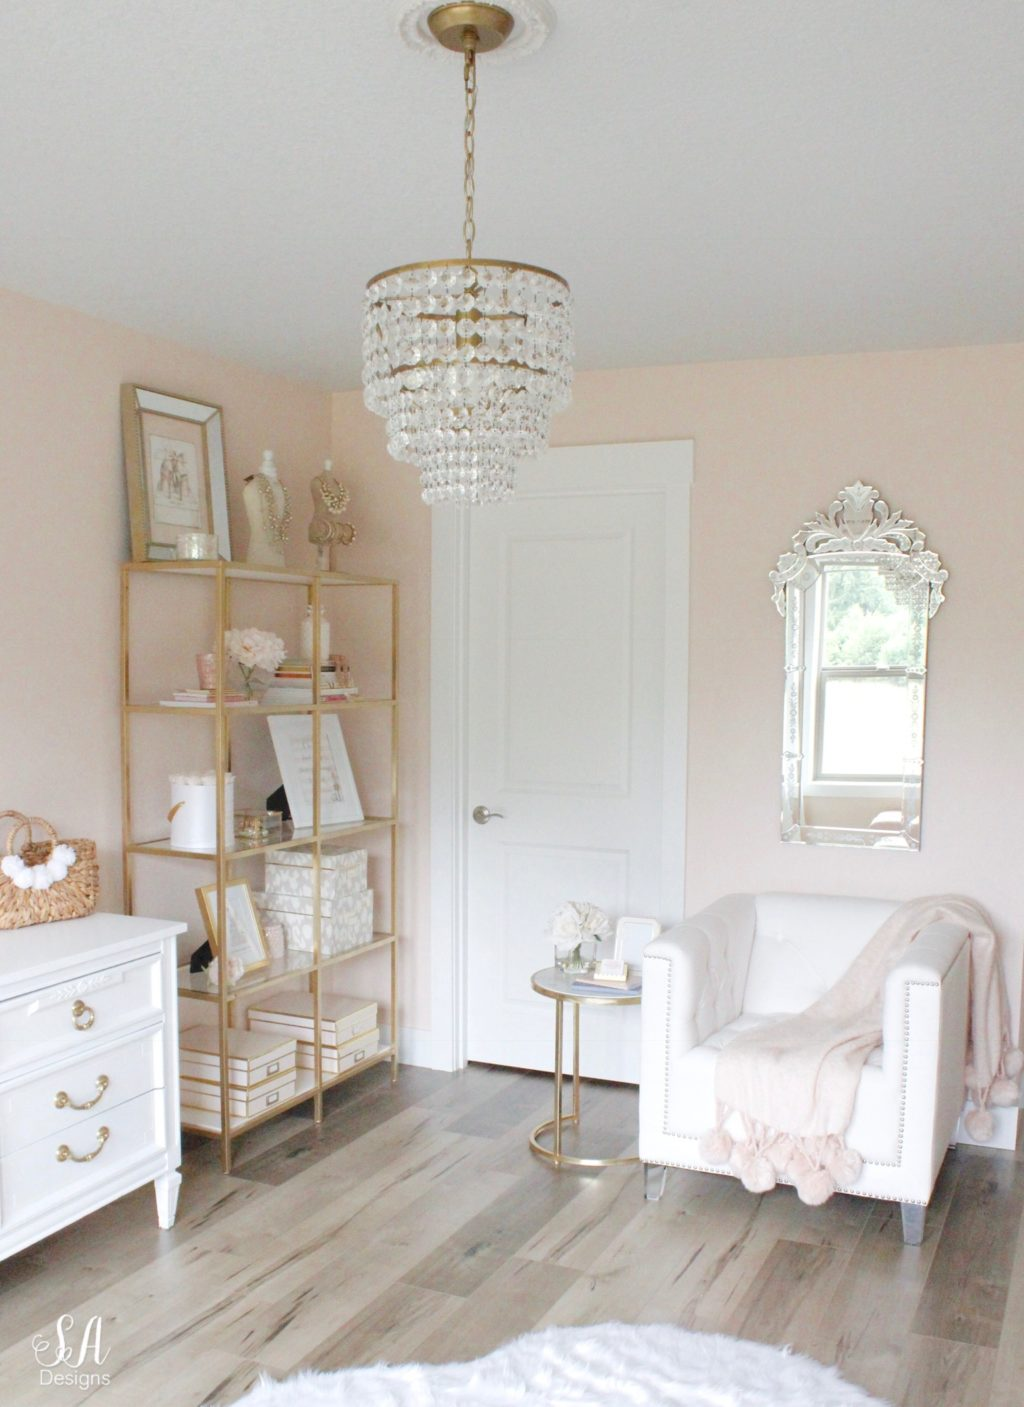 Updated Glam Office Reveal With Blush Pink Walls - Summer Adams